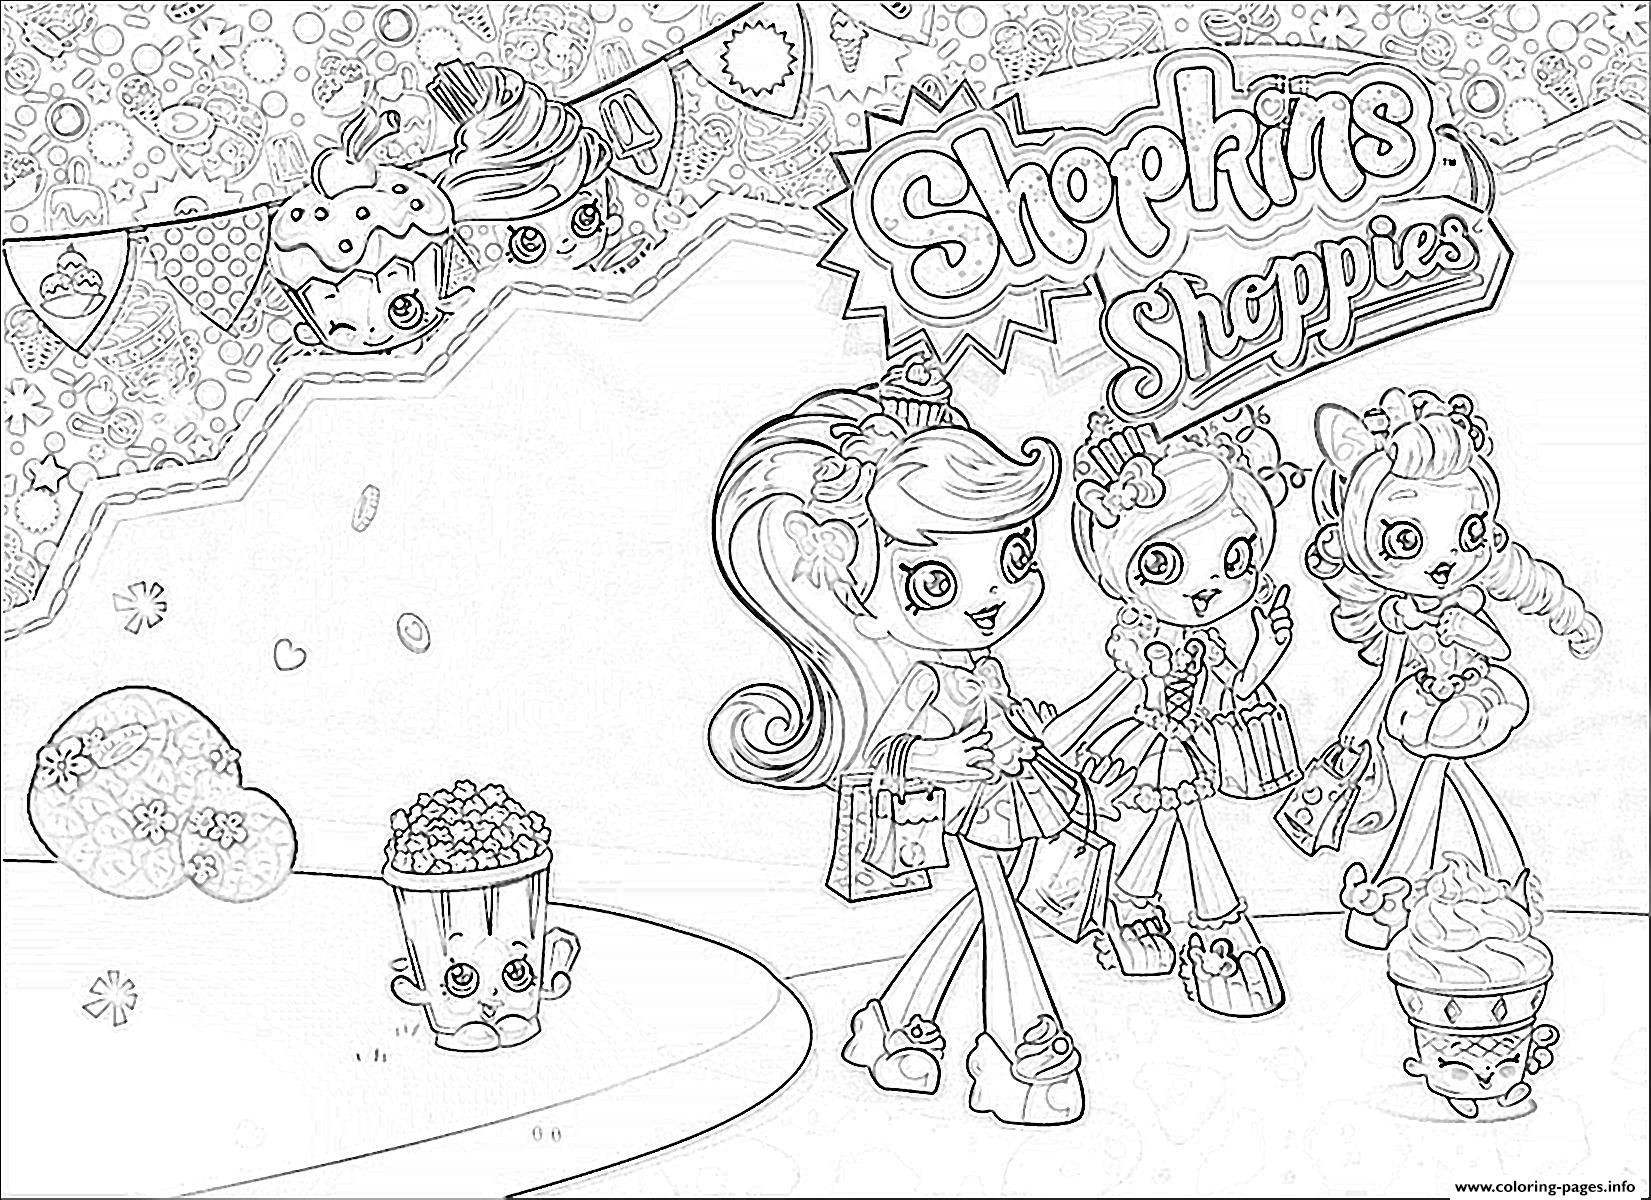 1651x1200 Coloring Pages Of Shopkins Copy Shopkins Coloring Pages To Print